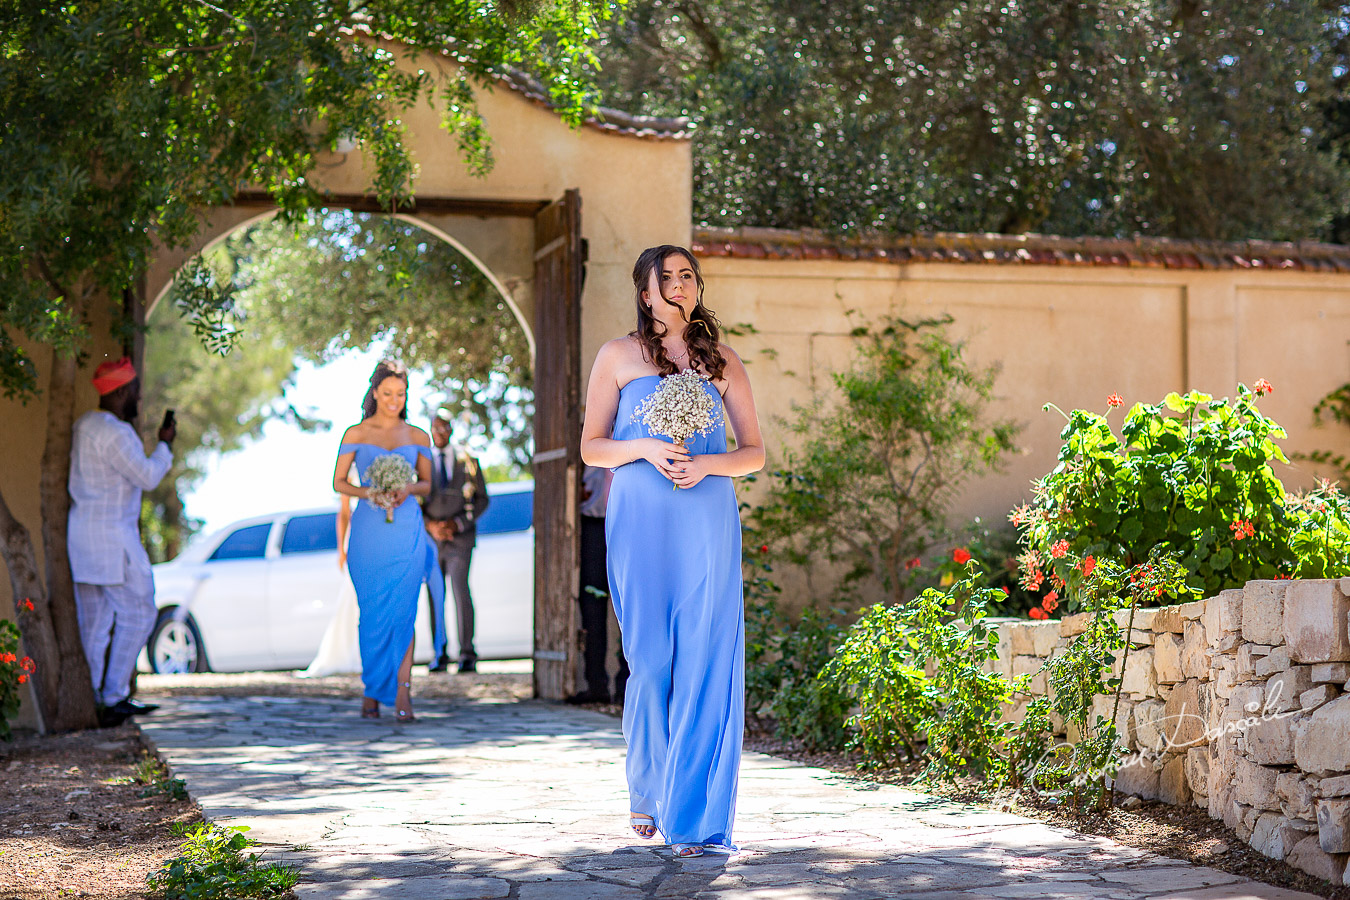 Moments with the bridesmaid captured at a wedding at Minthis Hills in Cyprus, by Cristian Dascalu.